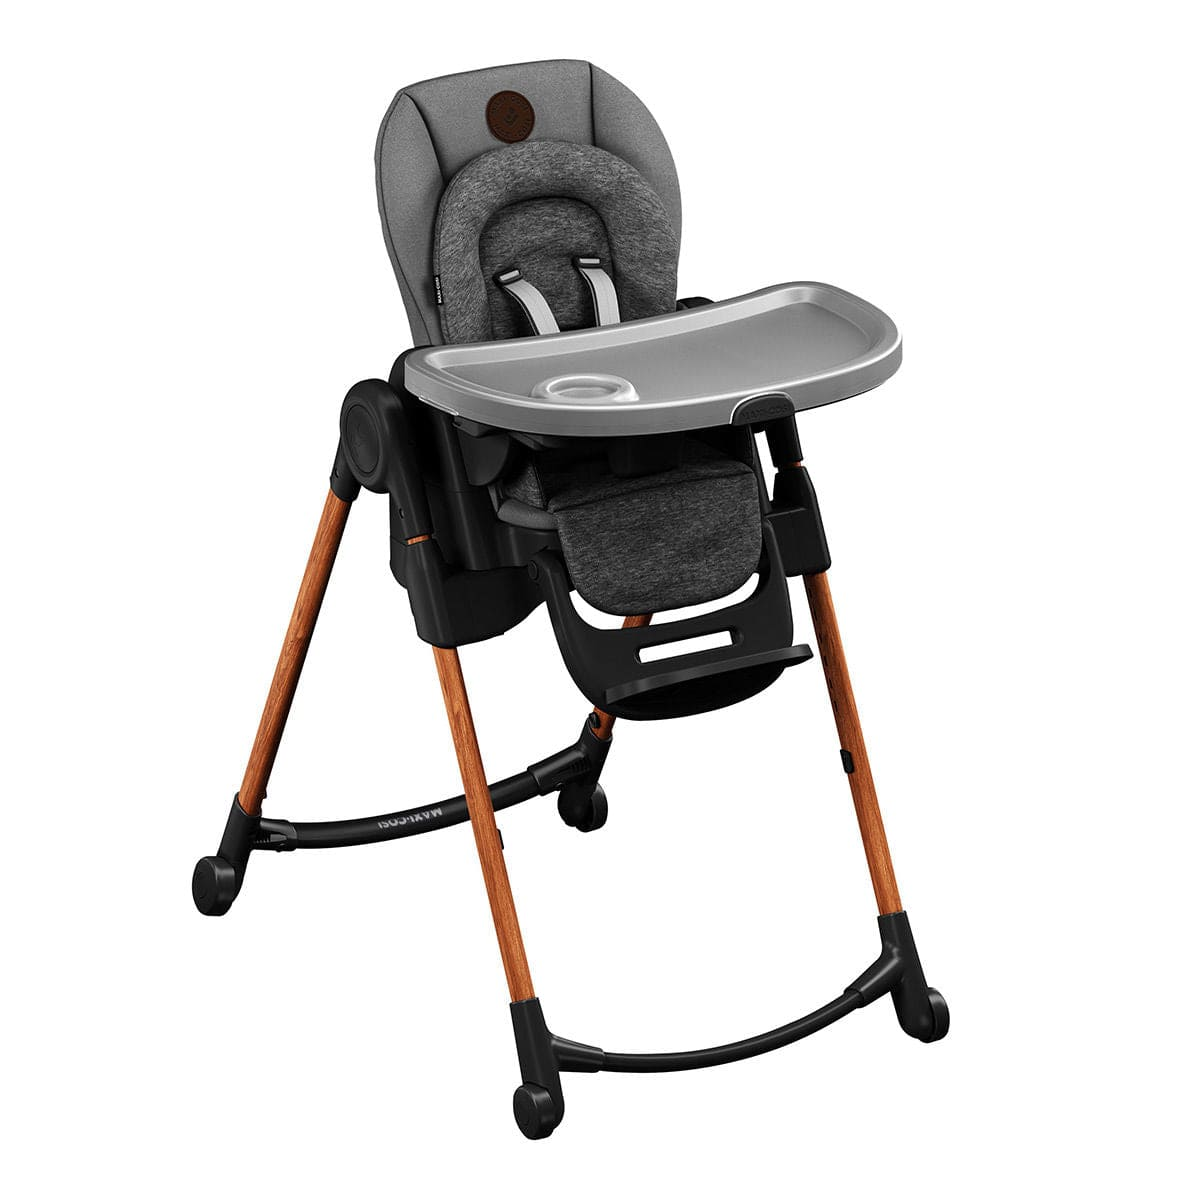 Maxi-Cosi Minla 6-in-1 High Chair - Essential Graphite